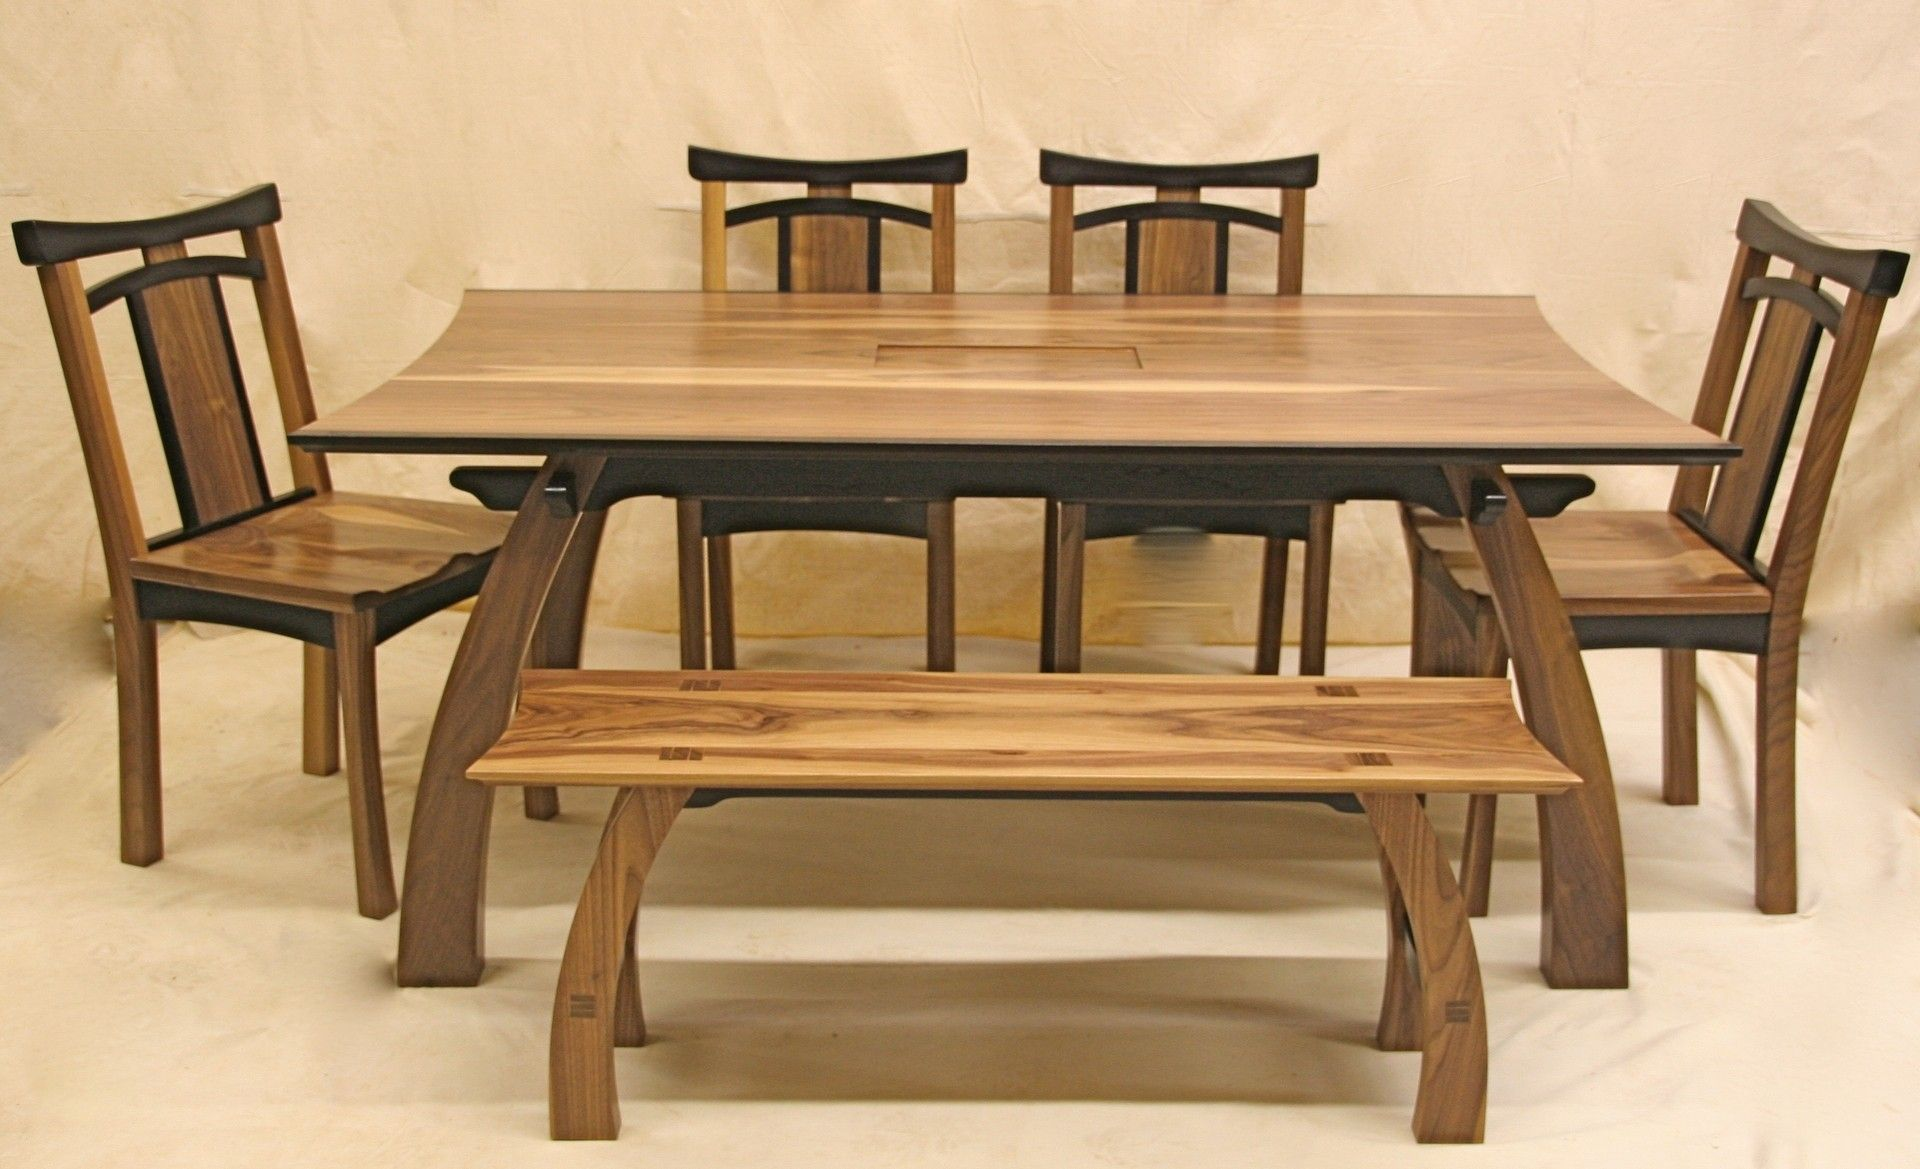 Rustic Japanese Low Teak Wood Dining Table Great Room Design